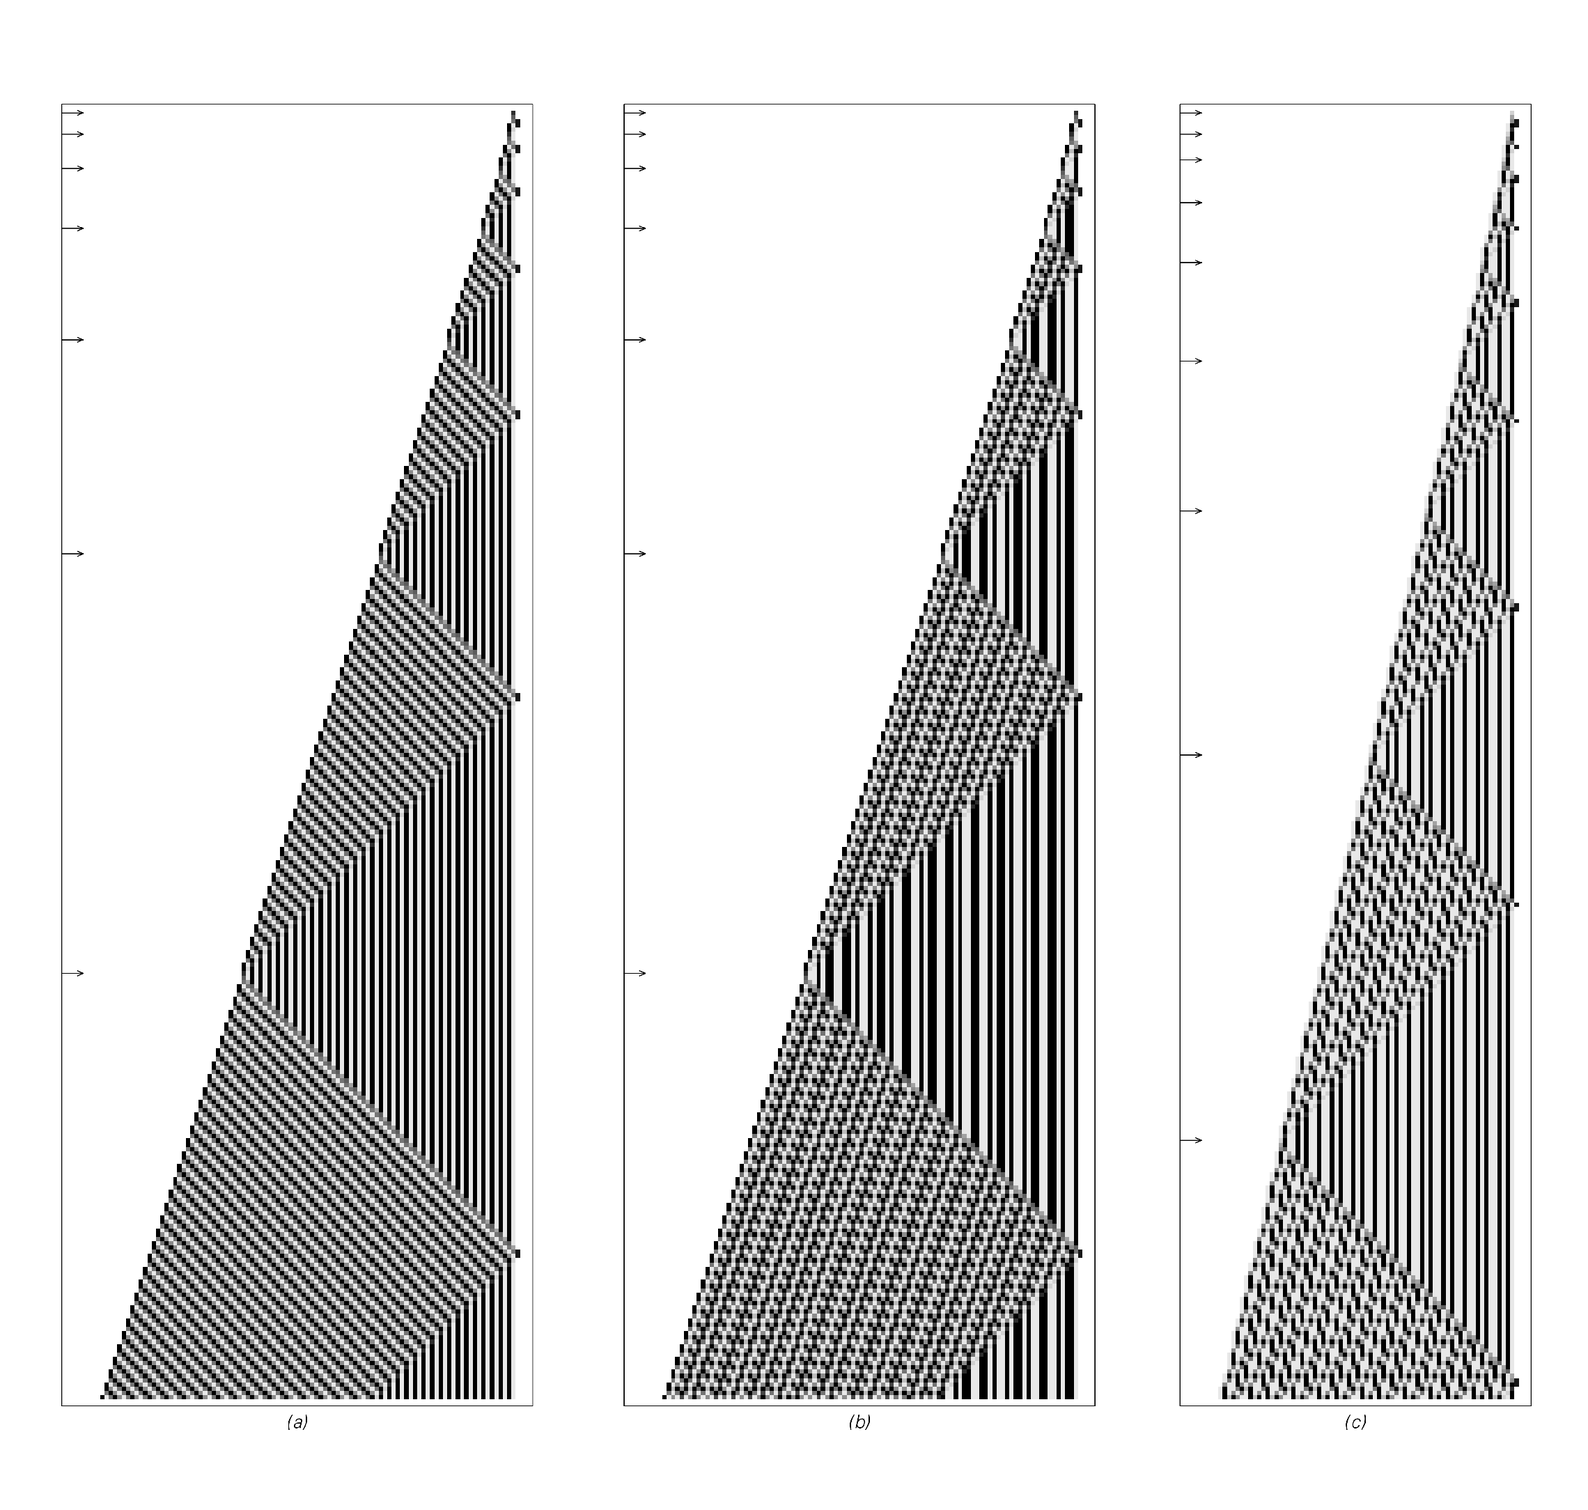 Examples of cellular automata that emulate substitution systems